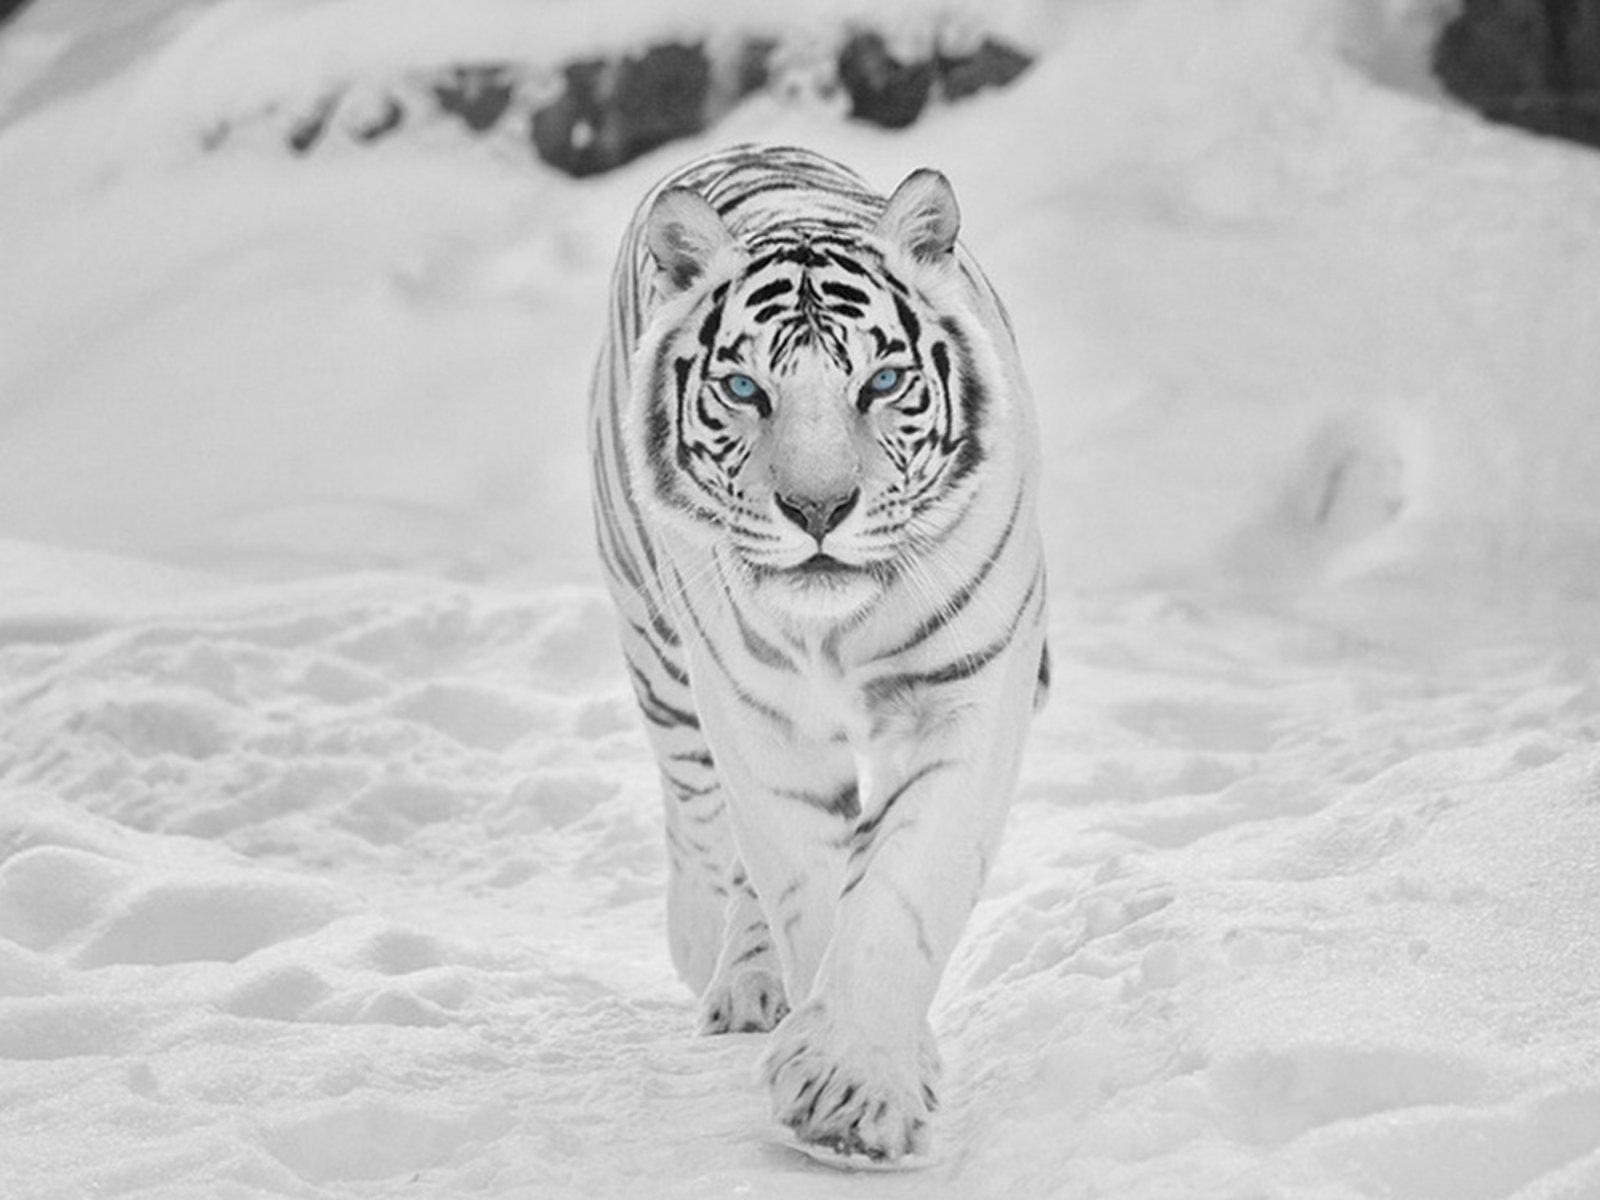 essay on white tigers Enjoy proficient essay writing and custom  reviews, theses and more, so our primary mission is the white tiger essay topics help  tigers have the largest.